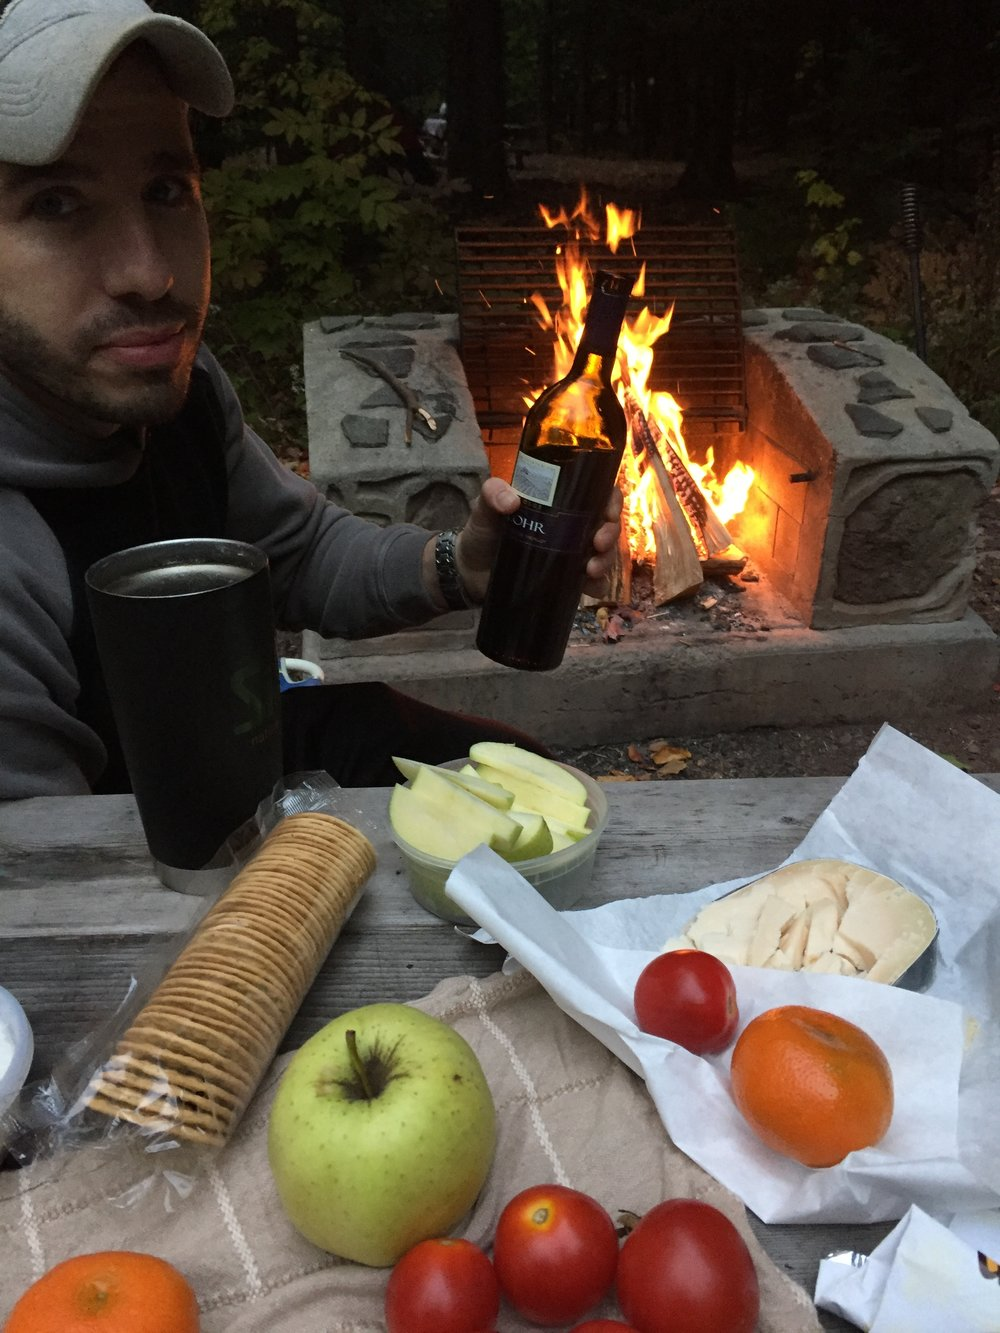 Wine, fruit, cheese, crackers, fire, all set.